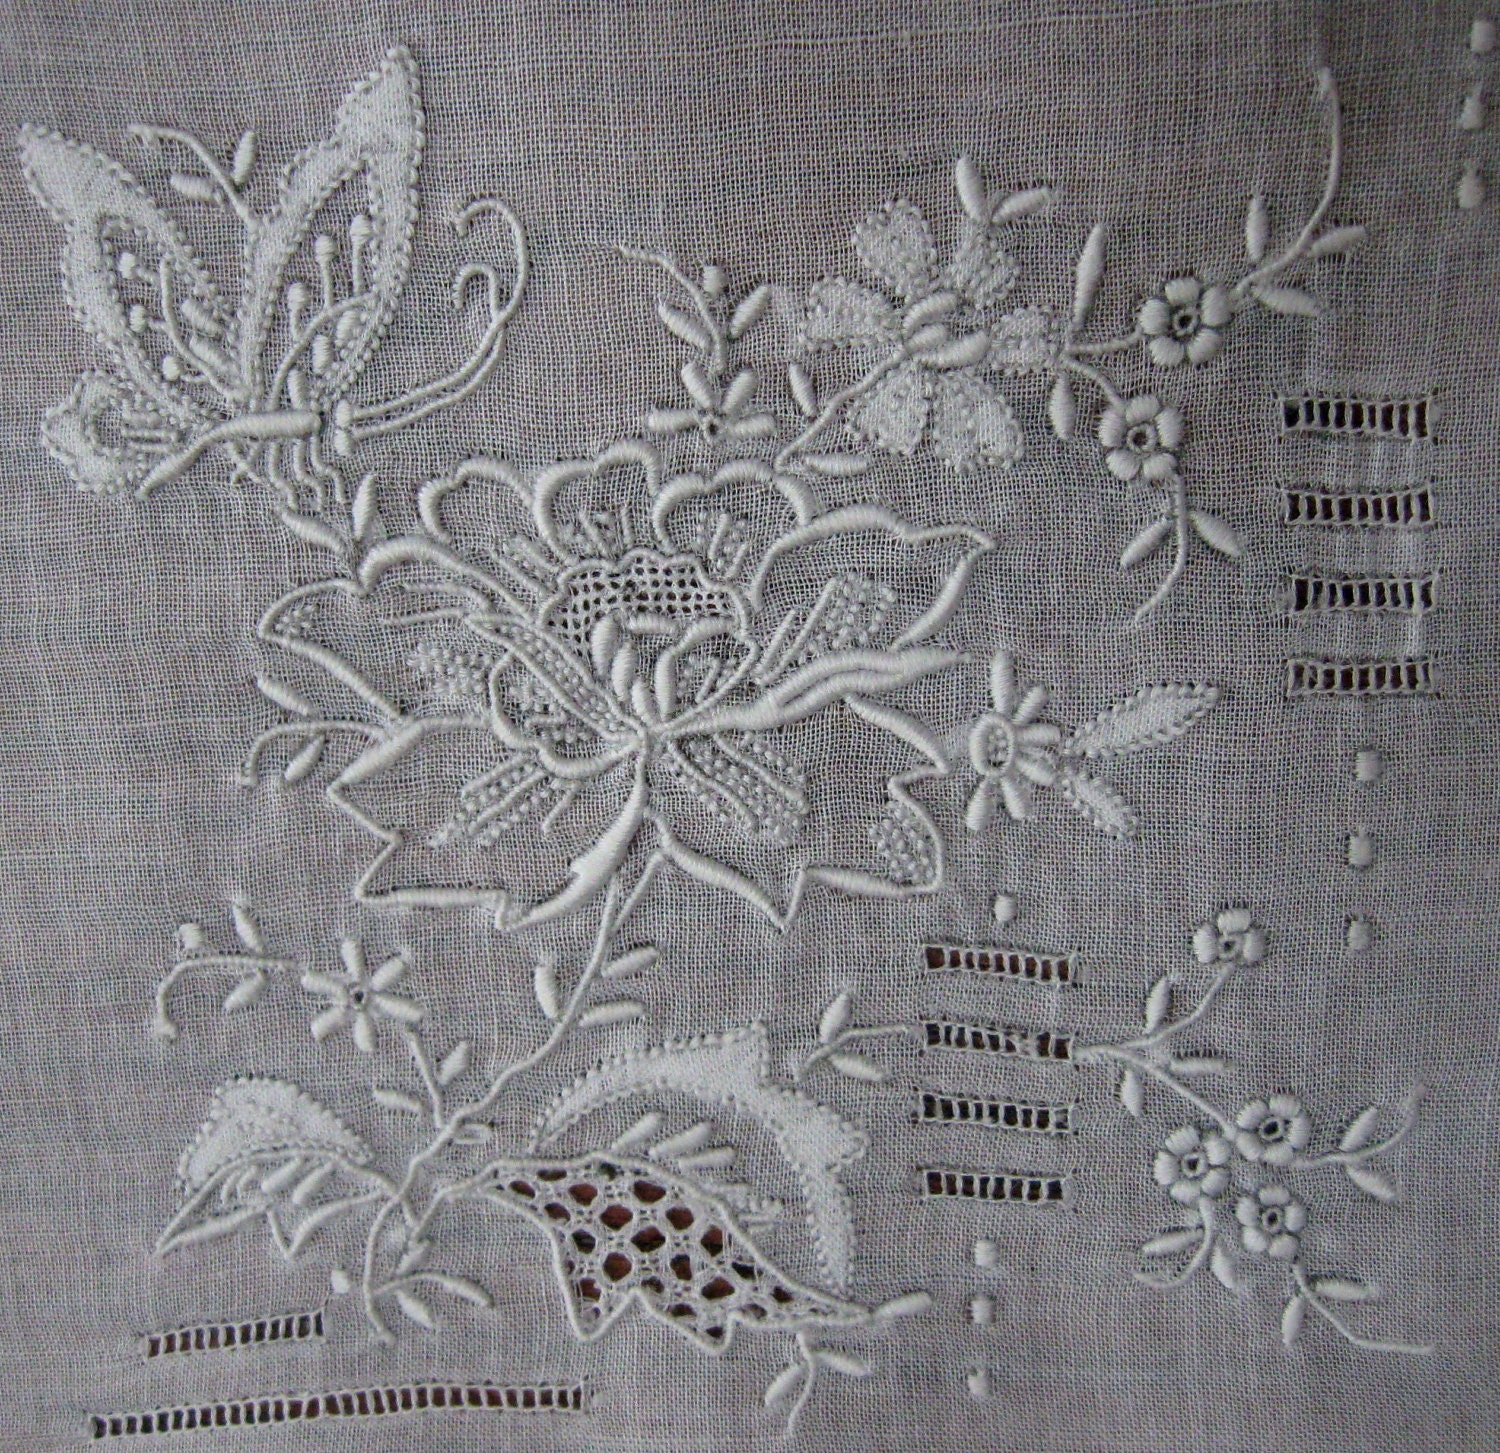 Vintage Wedding Handkerchief Embroidered Open White Work Floral Embroidery 1920s - CinfulOldies